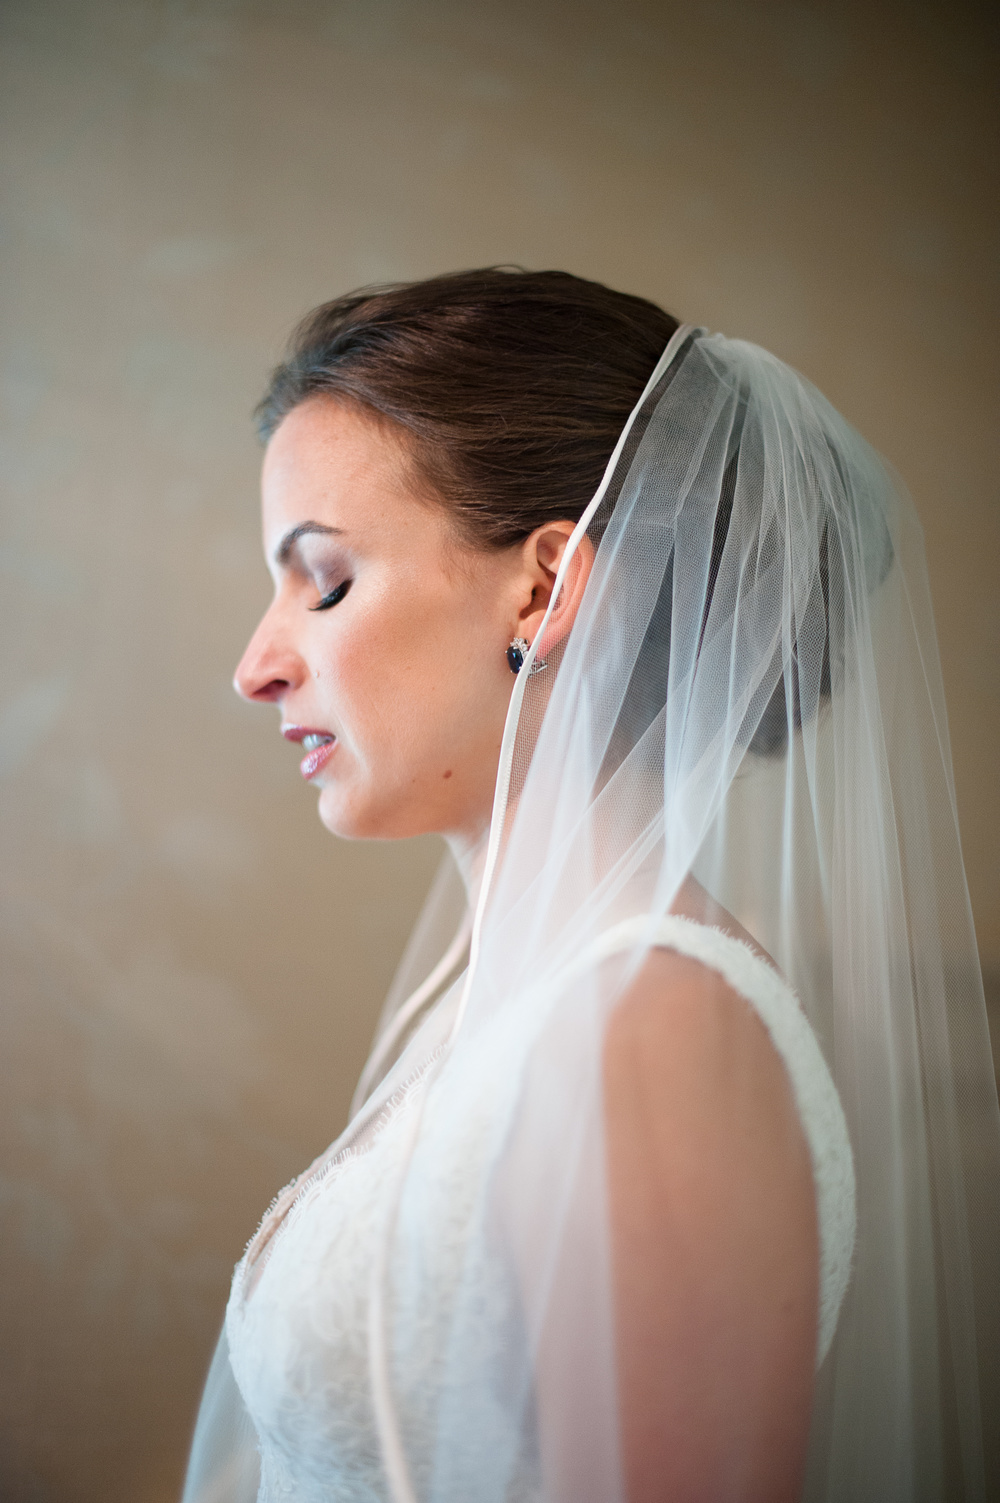 Part of what we love about photographing weddings is being allowed to witness the range of emotion that our subjects are feeling. Moments like this require a certain level of comfort: being open to the camera in this way requires tremendous vulnerability. We have great respect for this vulnerability, and we're so thankful that our clients are able to share these intimate moments with us.